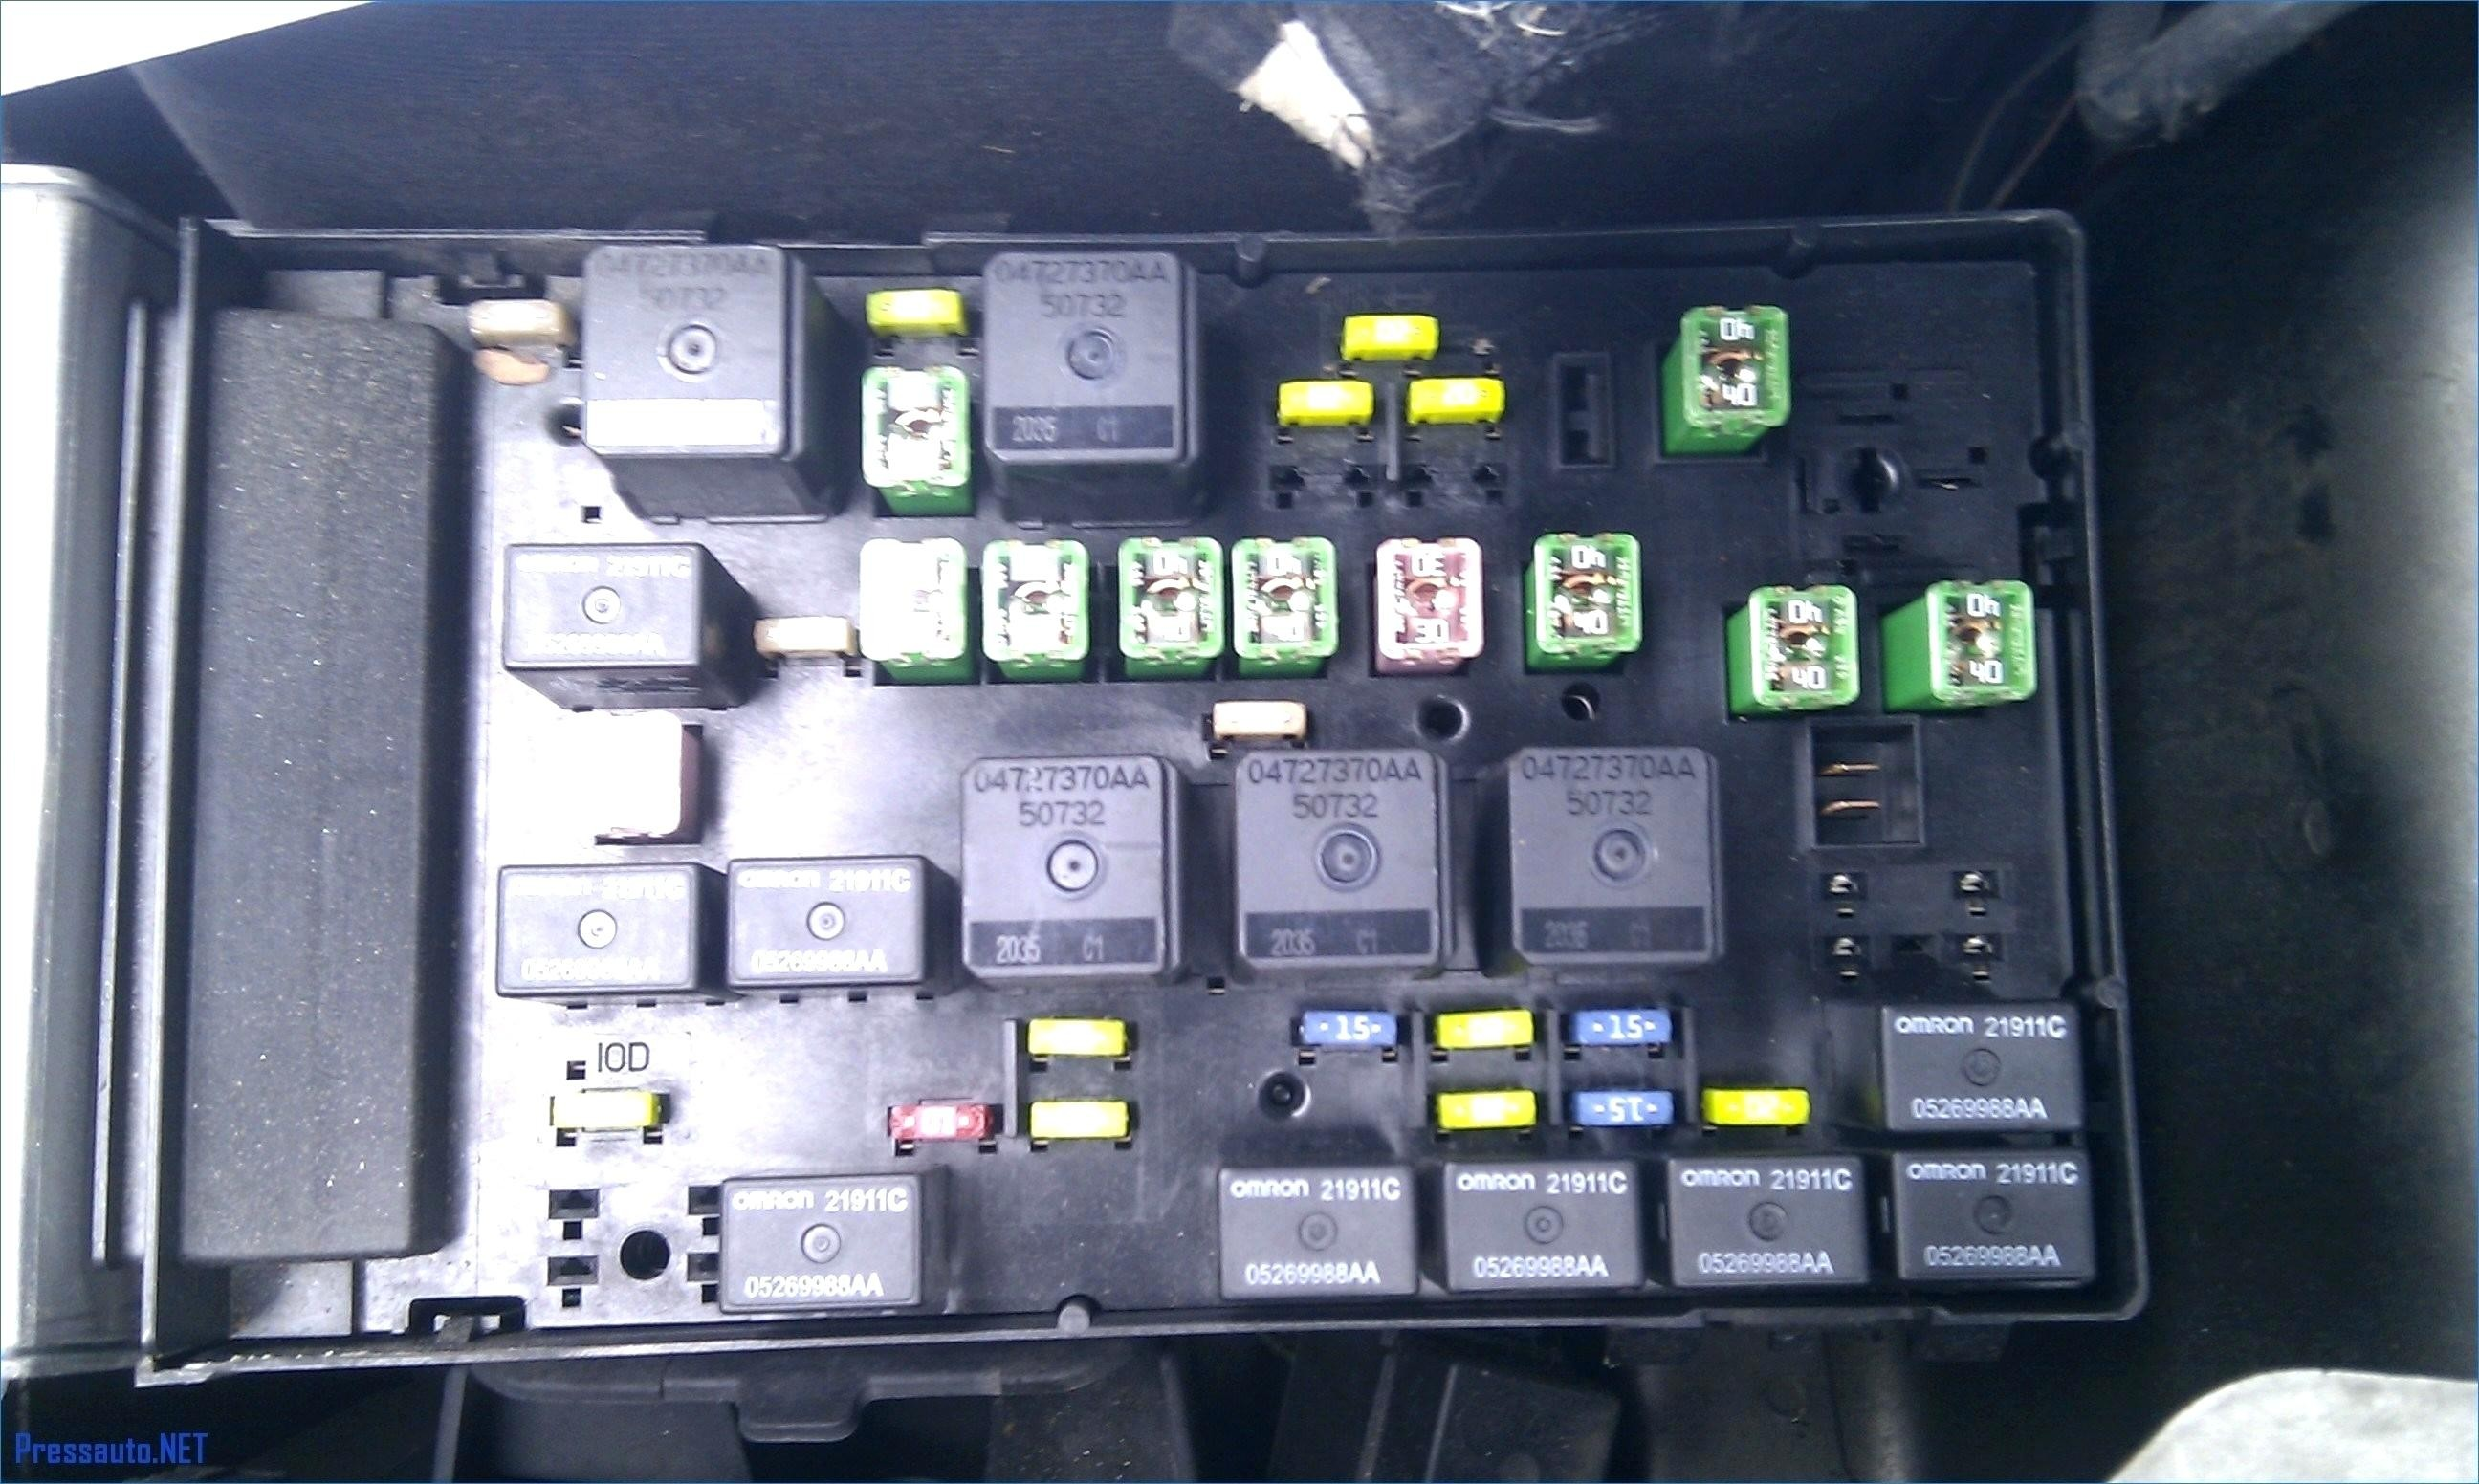 Ford Expedition Fuse Box Diagram Ford Expedition Fuse Box Location Car